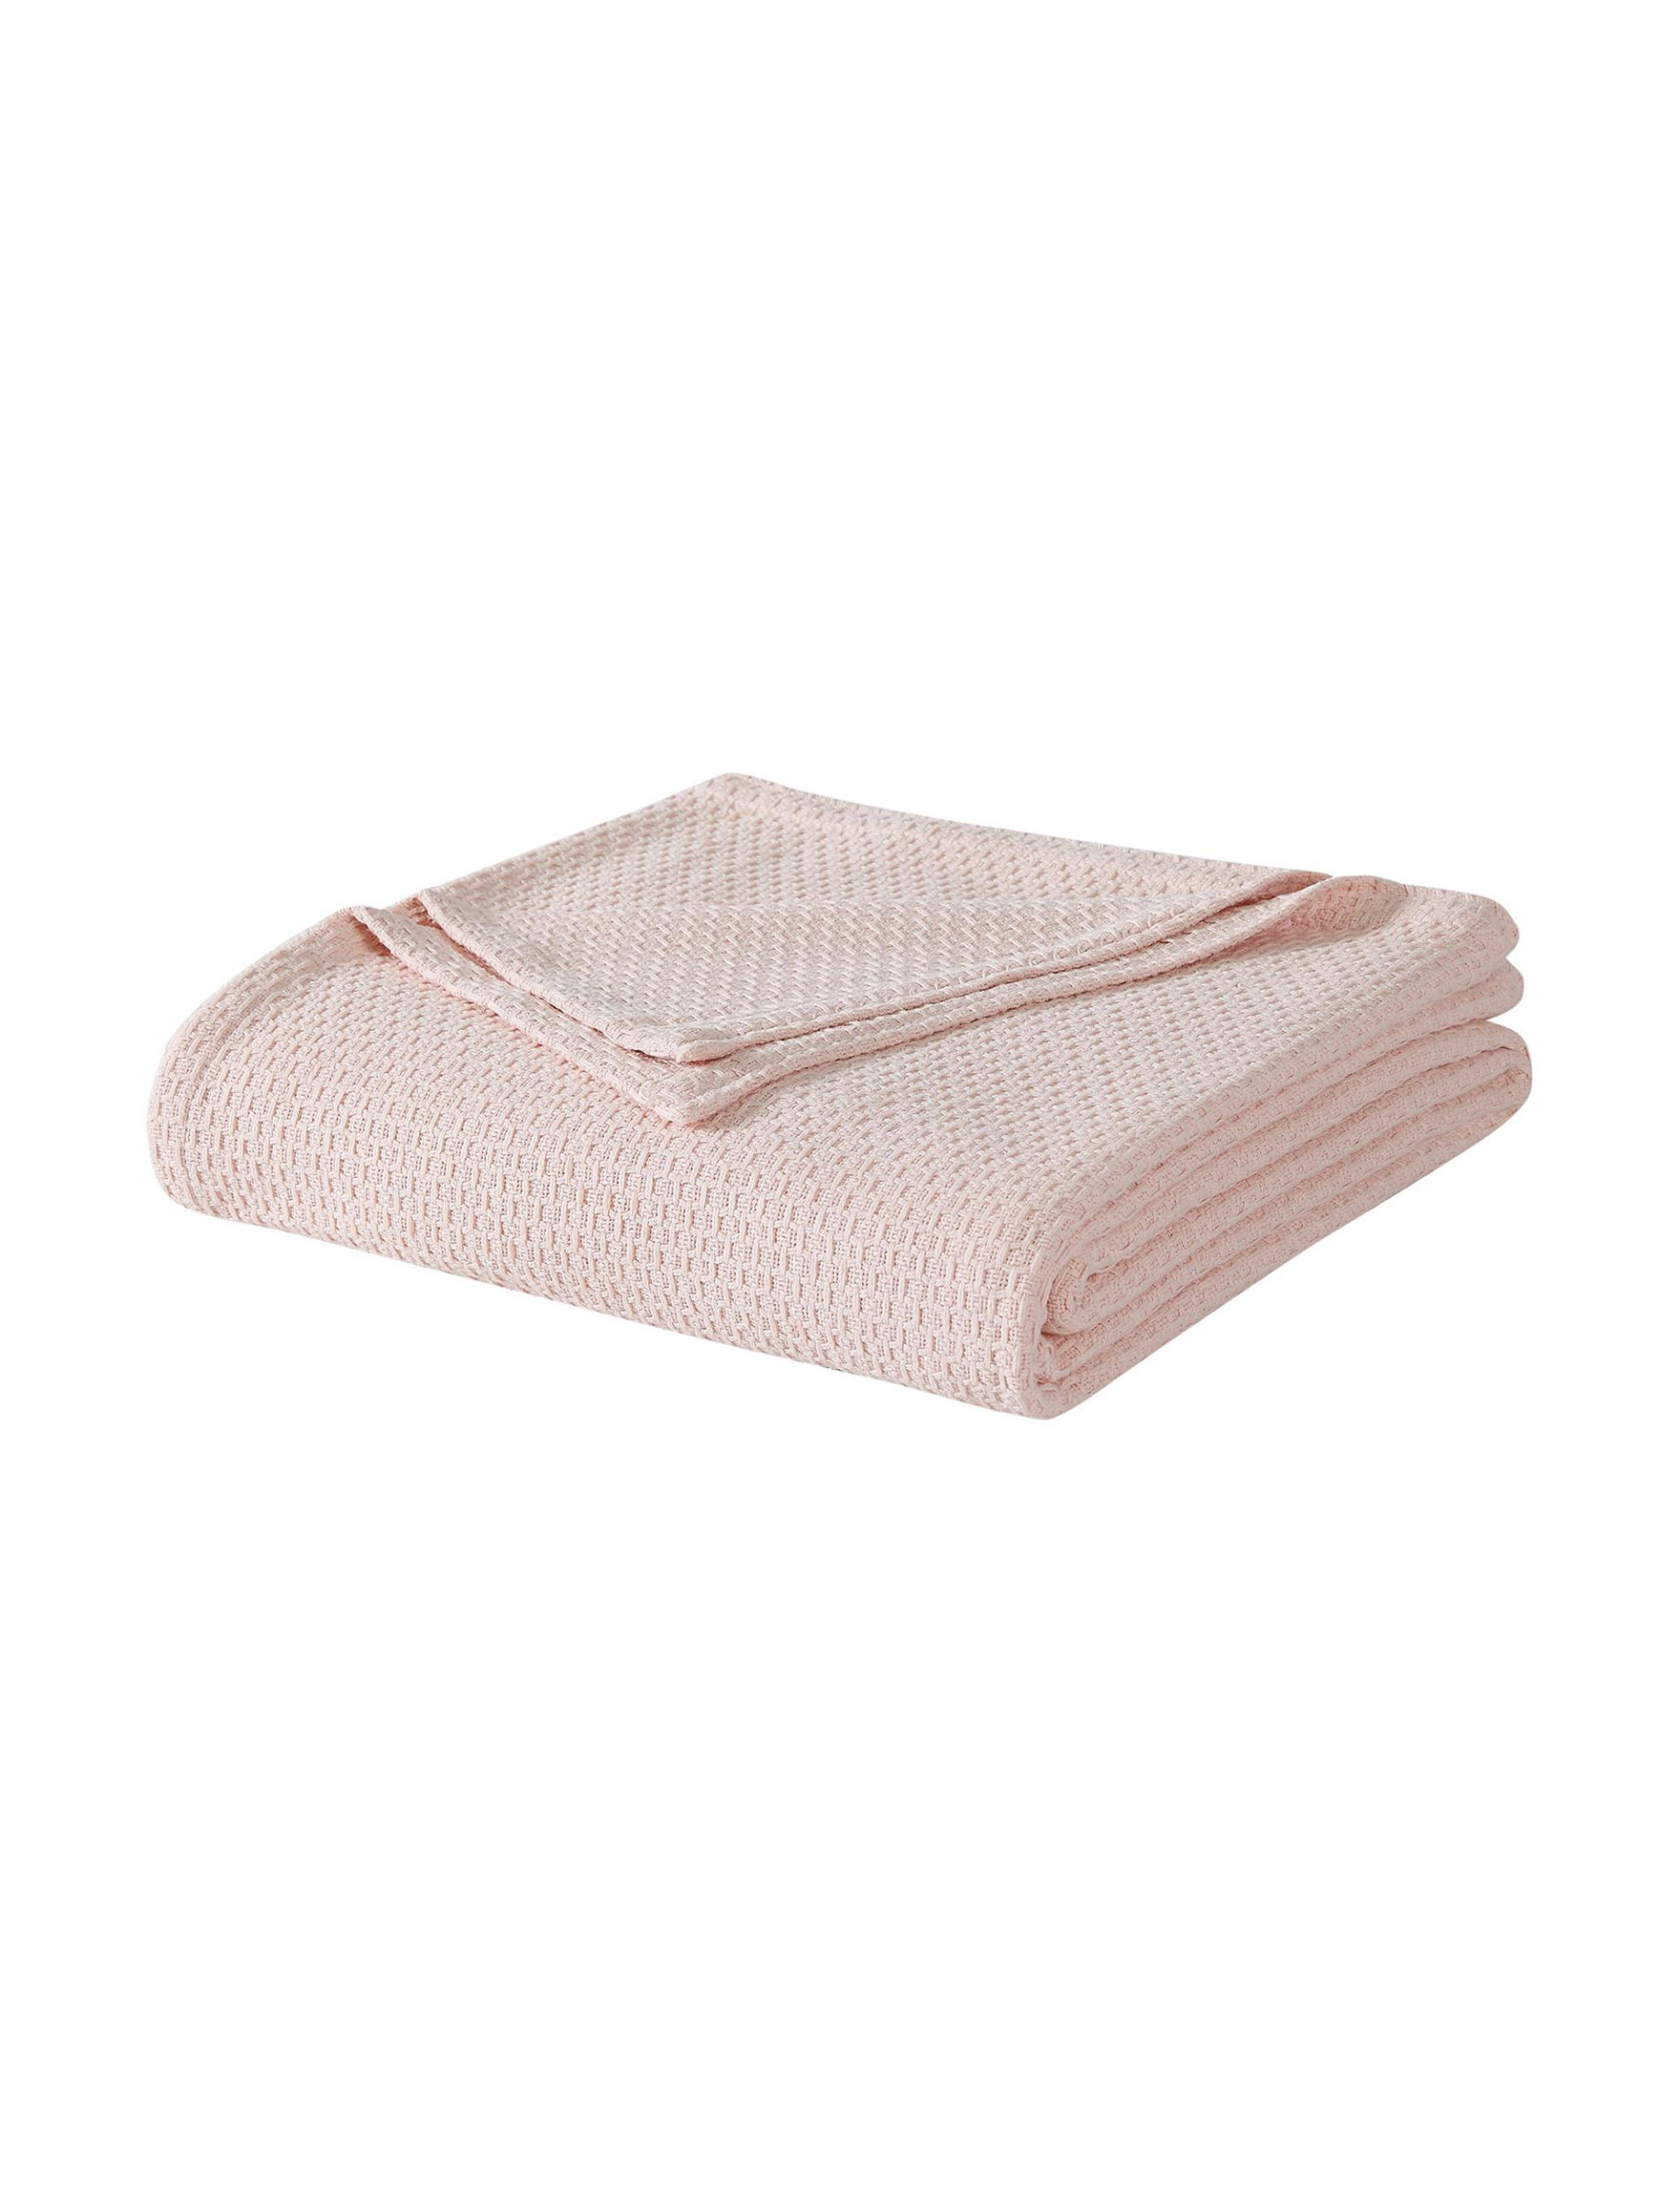 Laura Ashley Pink Blankets & Throws